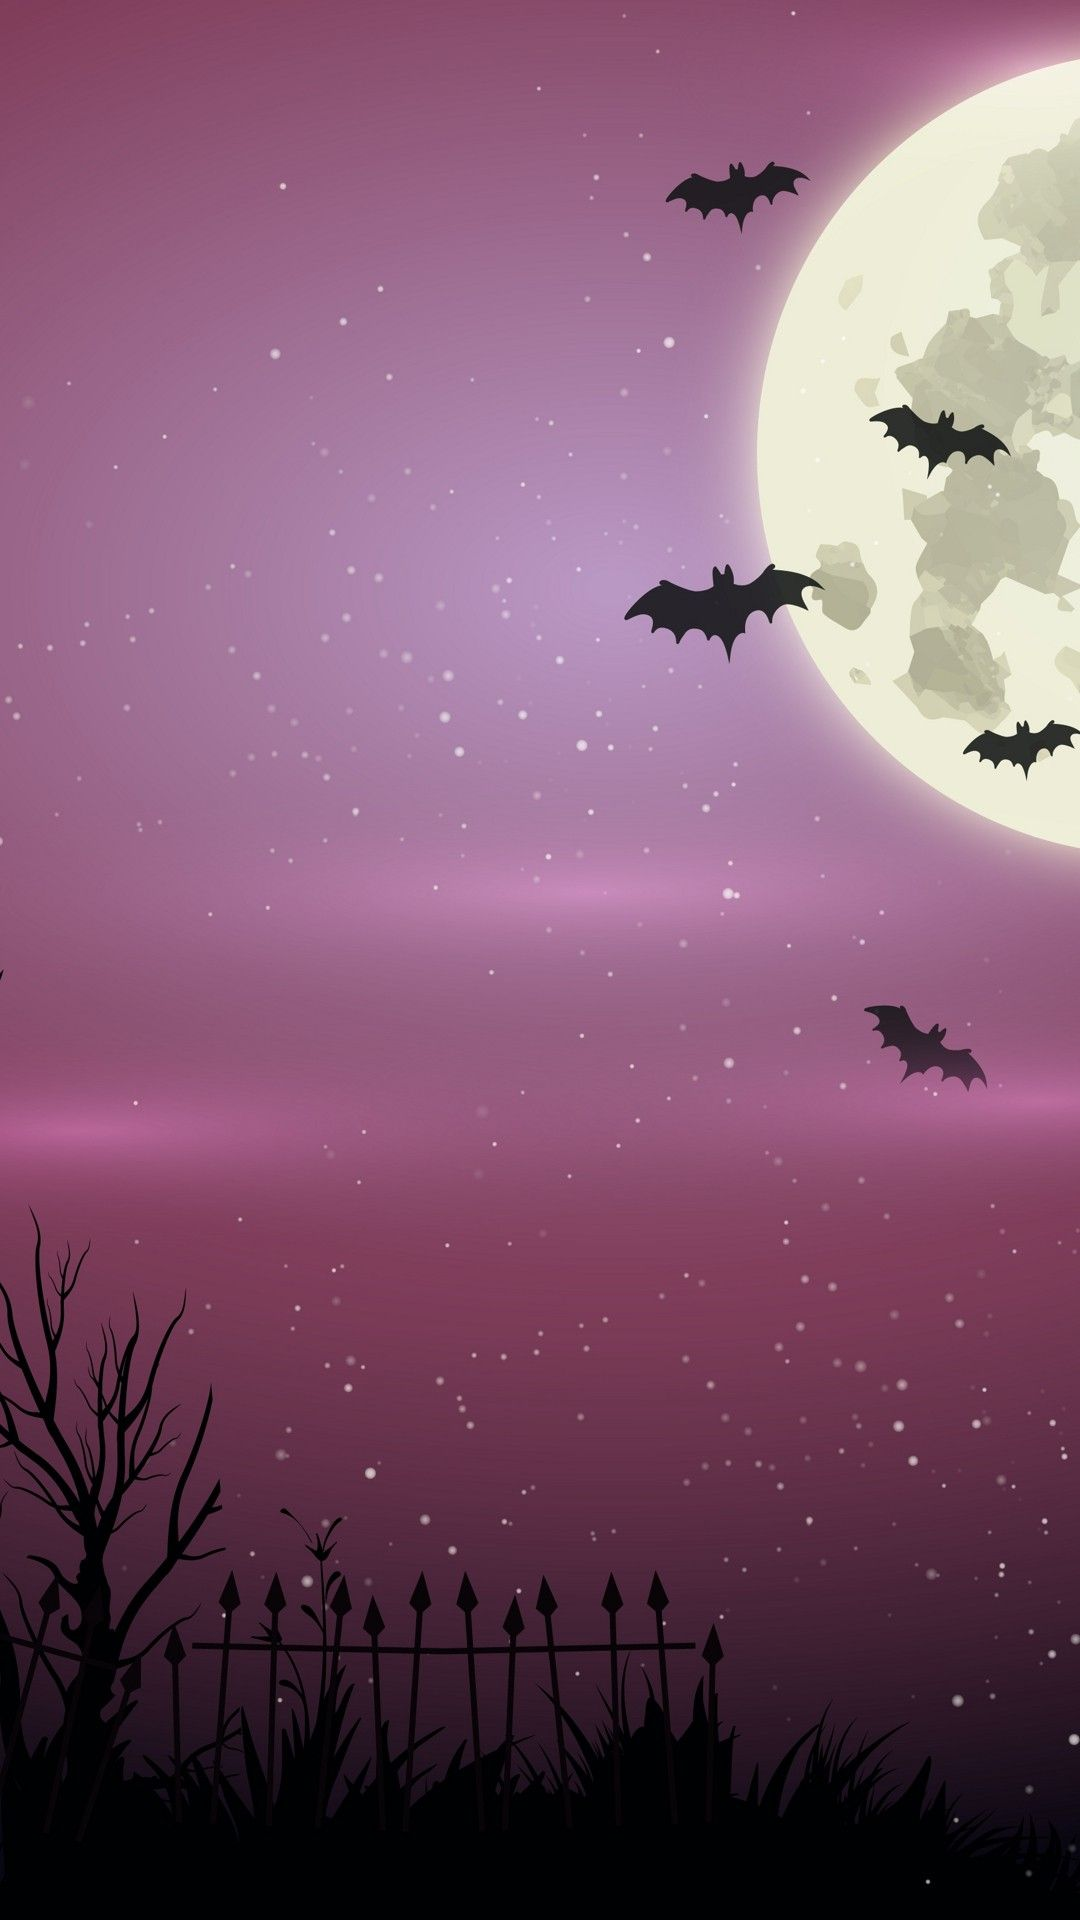 Pin By Erin Celticwitch On Halloween Herbst Halloween Wallpaper Backgrounds Halloween Wallpaper Halloween Wallpaper Iphone